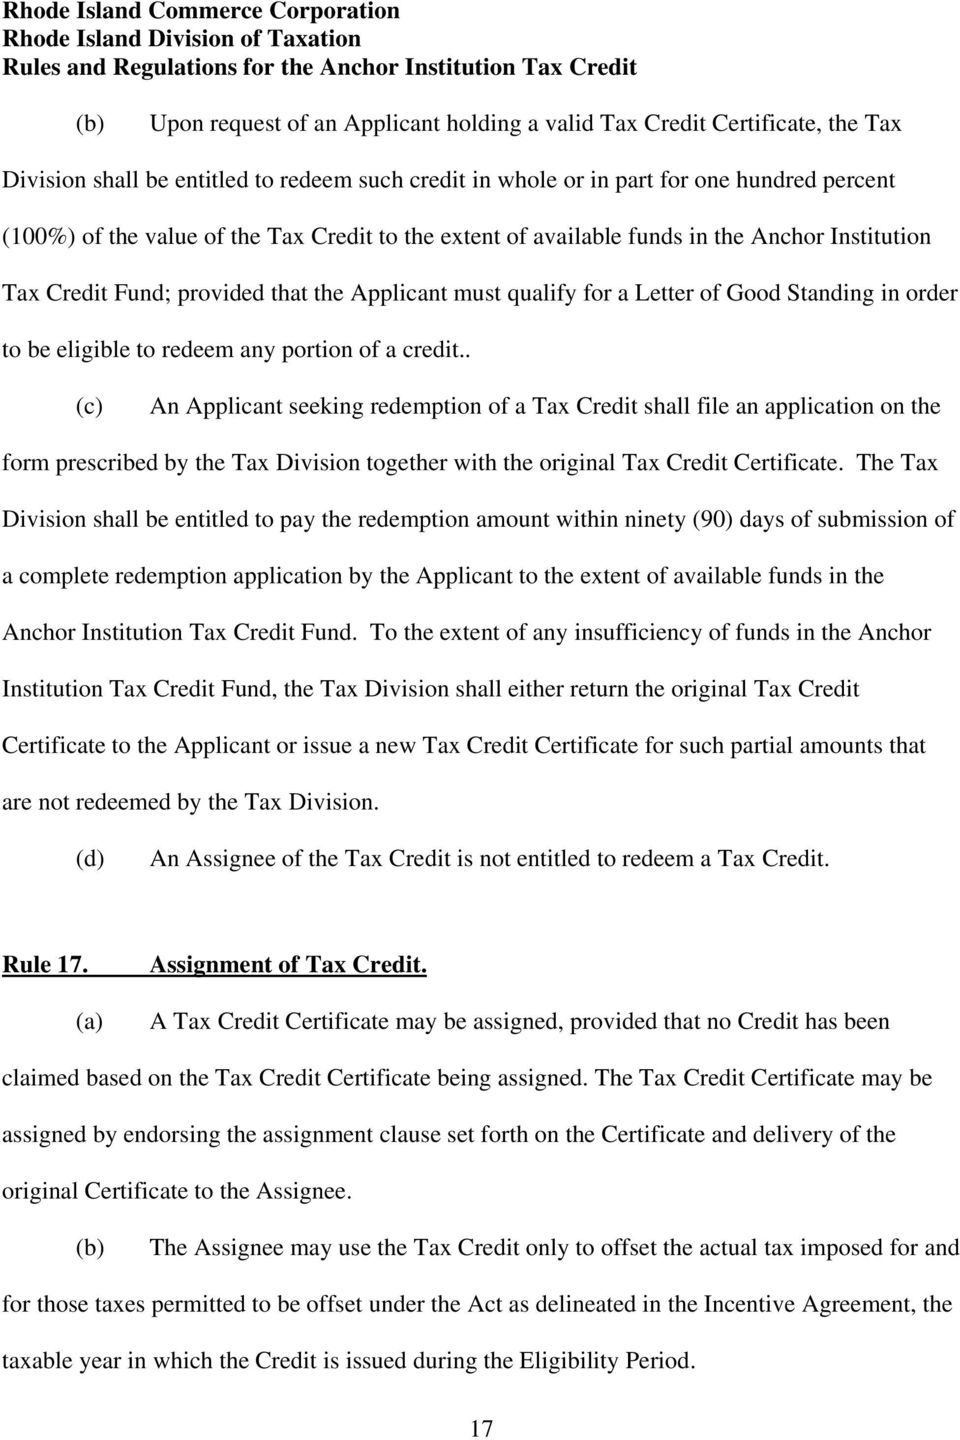 portion of a credit.. (c) An Applicant seeking redemption of a Tax Credit shall file an application on the form prescribed by the Tax Division together with the original Tax Credit Certificate.